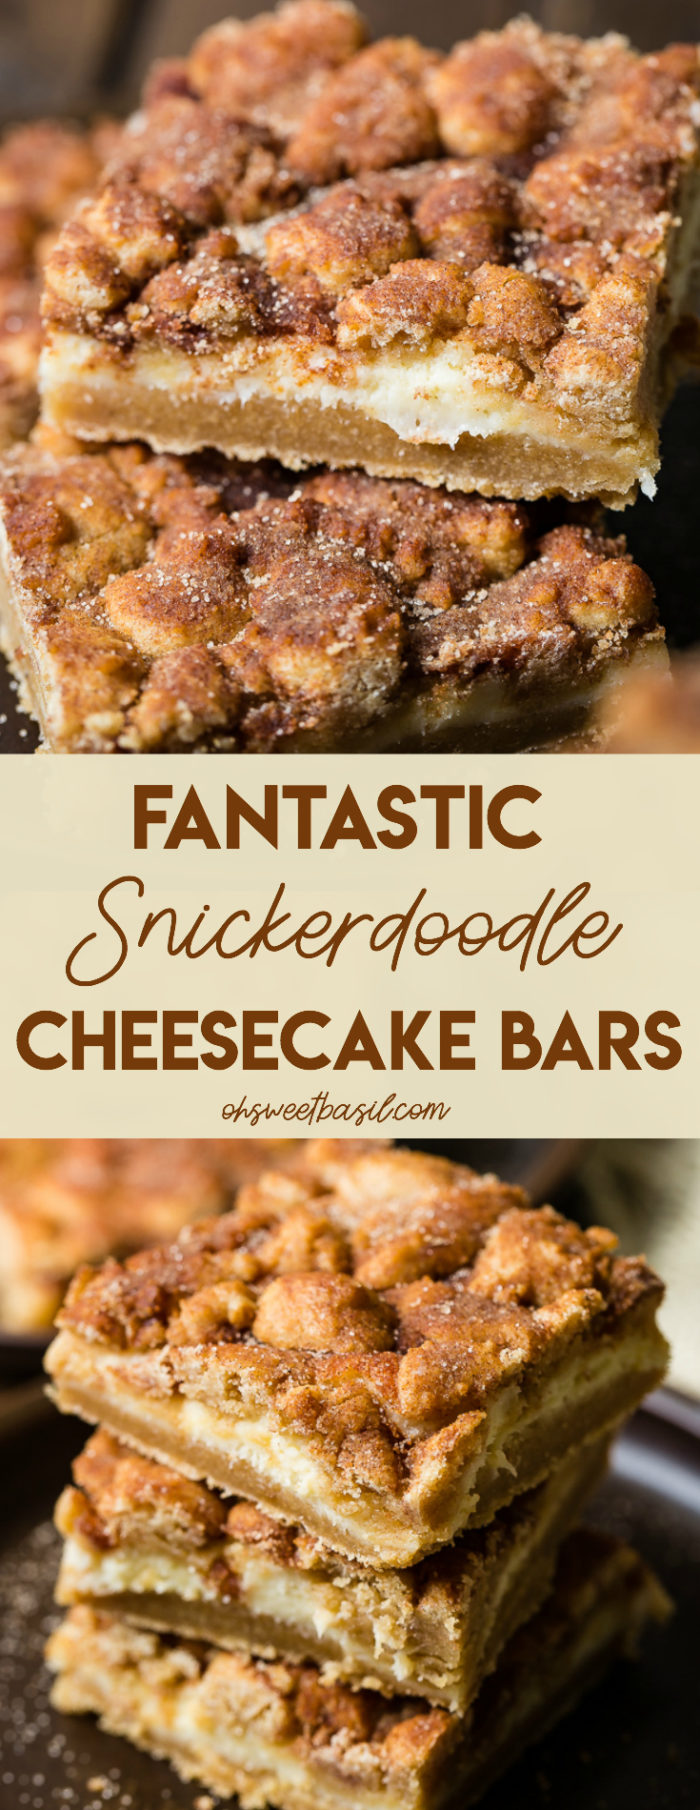 Snickerdoodle cookies are used as the crust and topping with creamy cheesecake in the middle and covered in cinnamon sugar. Fantastic Snickerdoodle cheesecake bars are amazing!